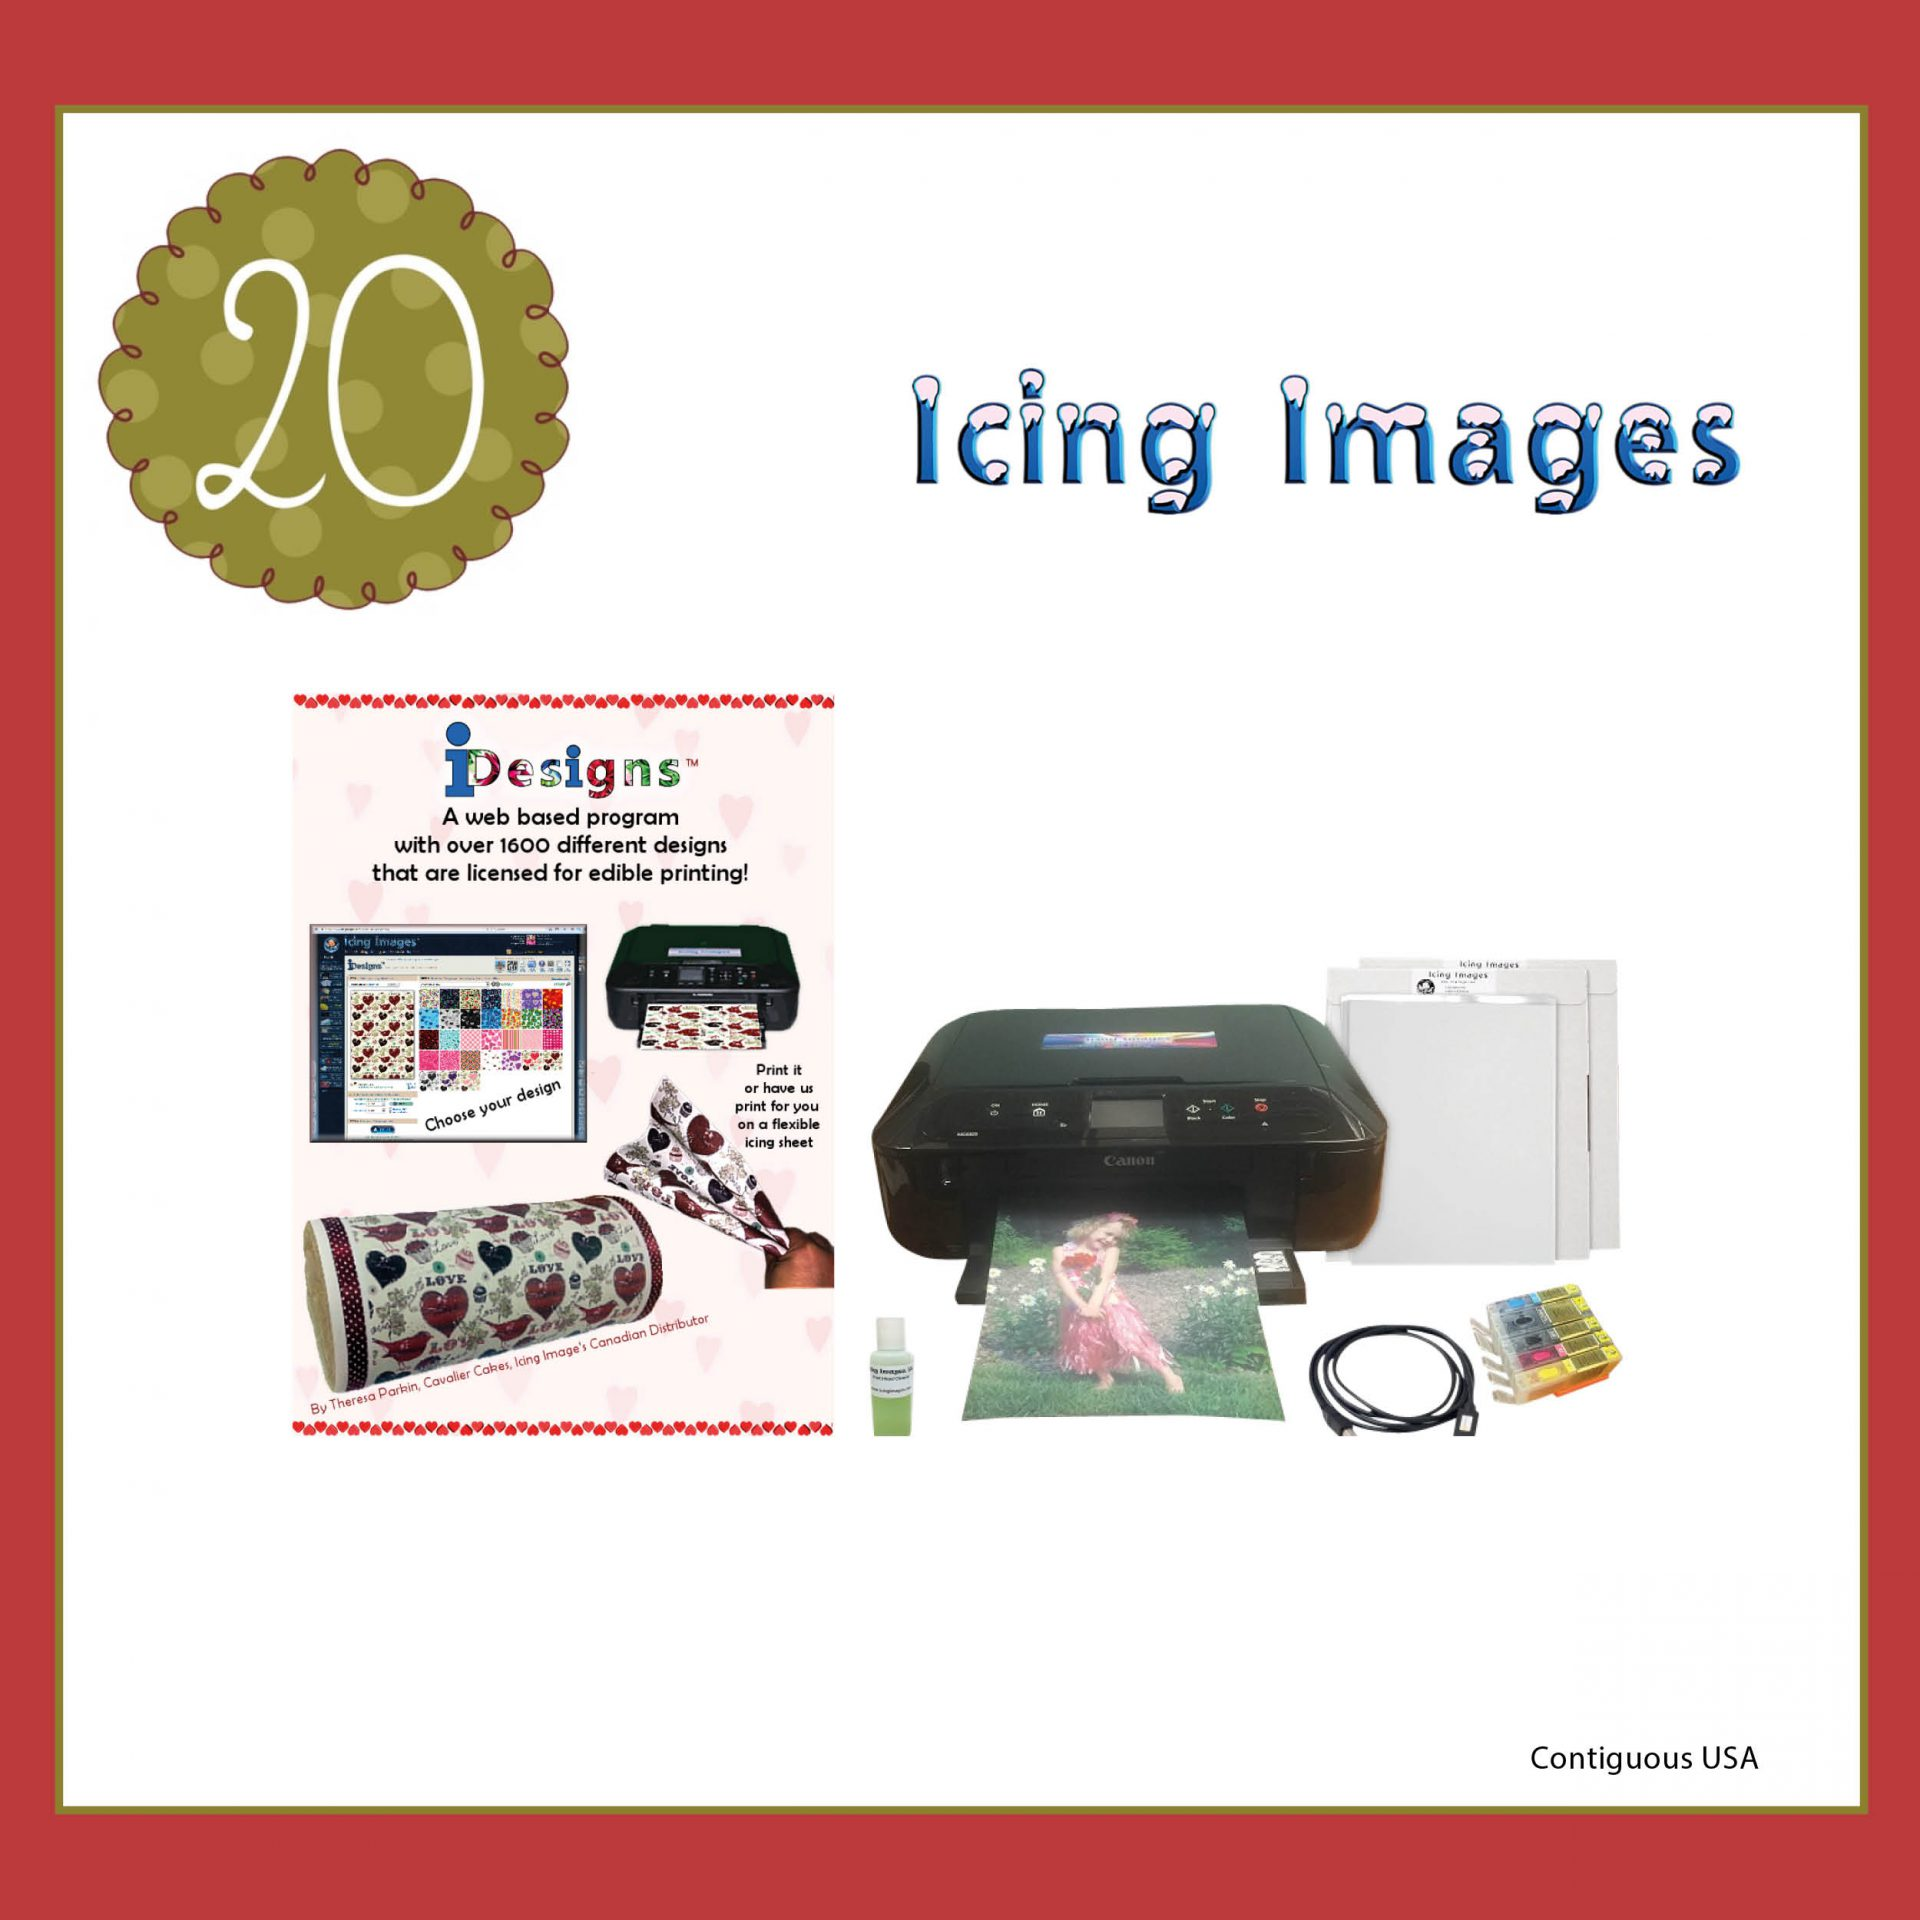 20th-december-icing-images